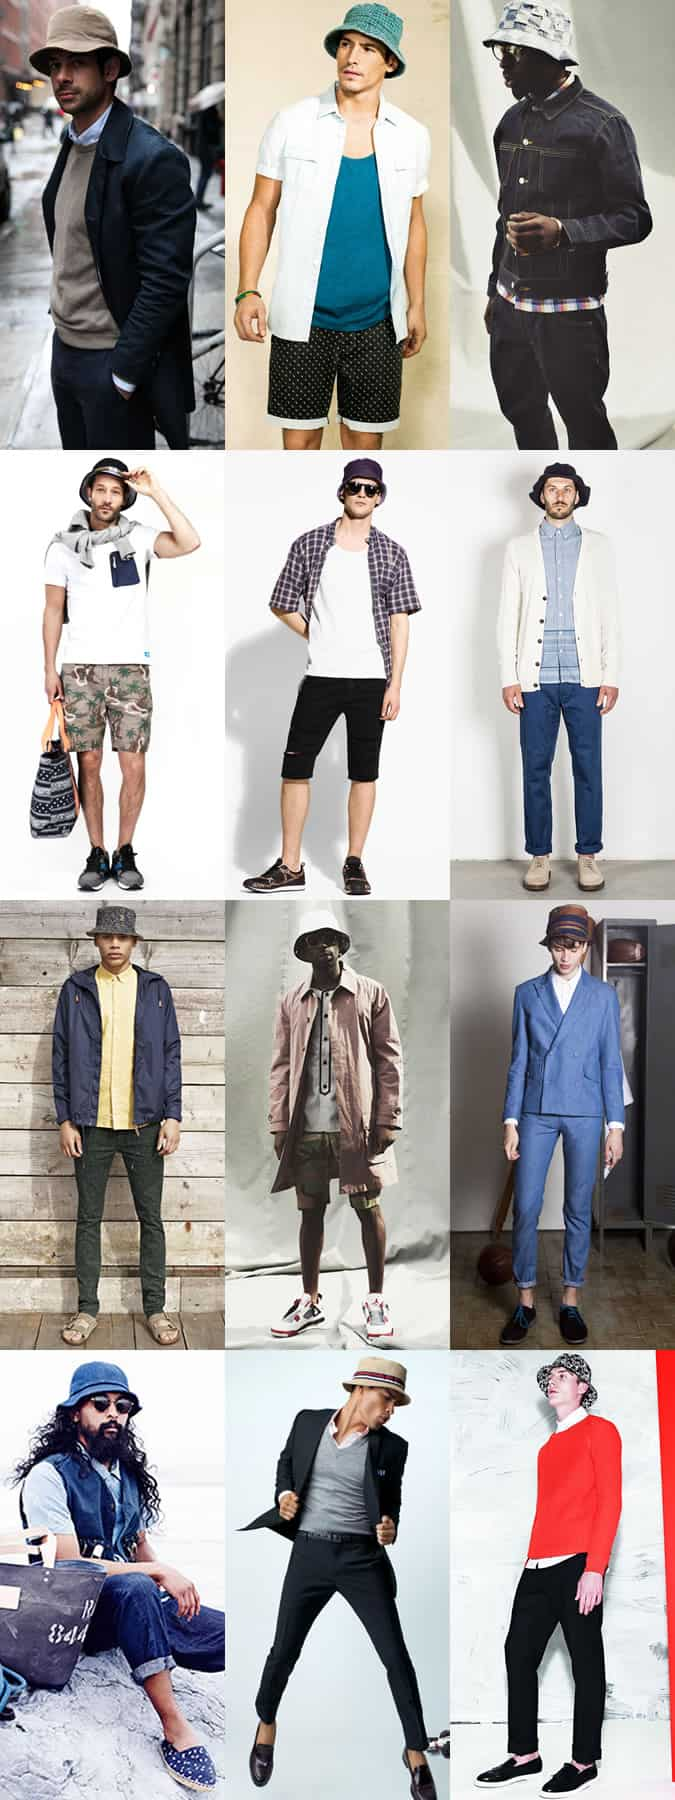 Men's Bucket Hat Summer Outfit Inspiration Lookbook